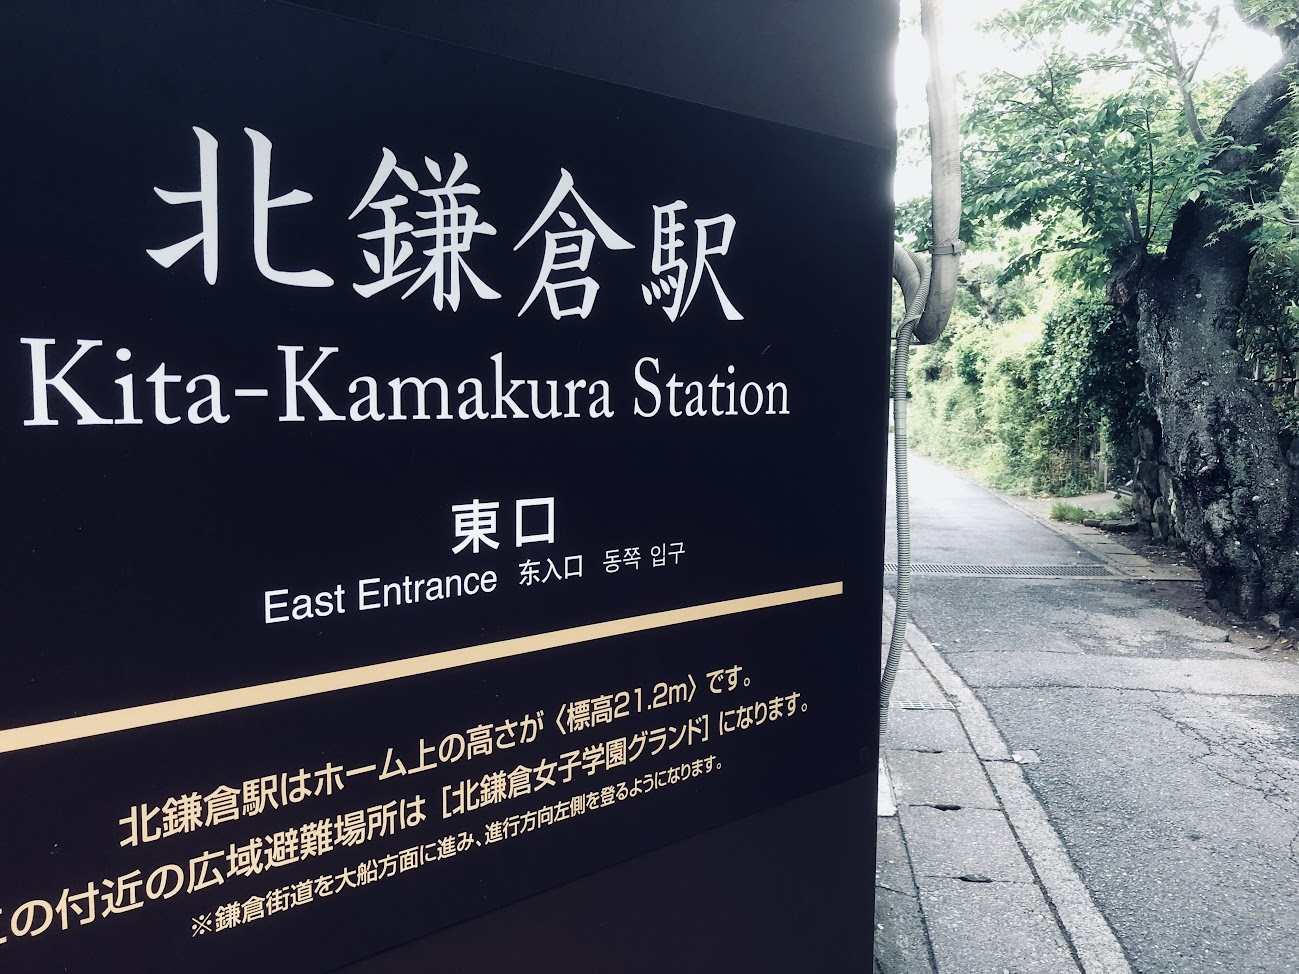 Kitakamakura station(East Entrance)